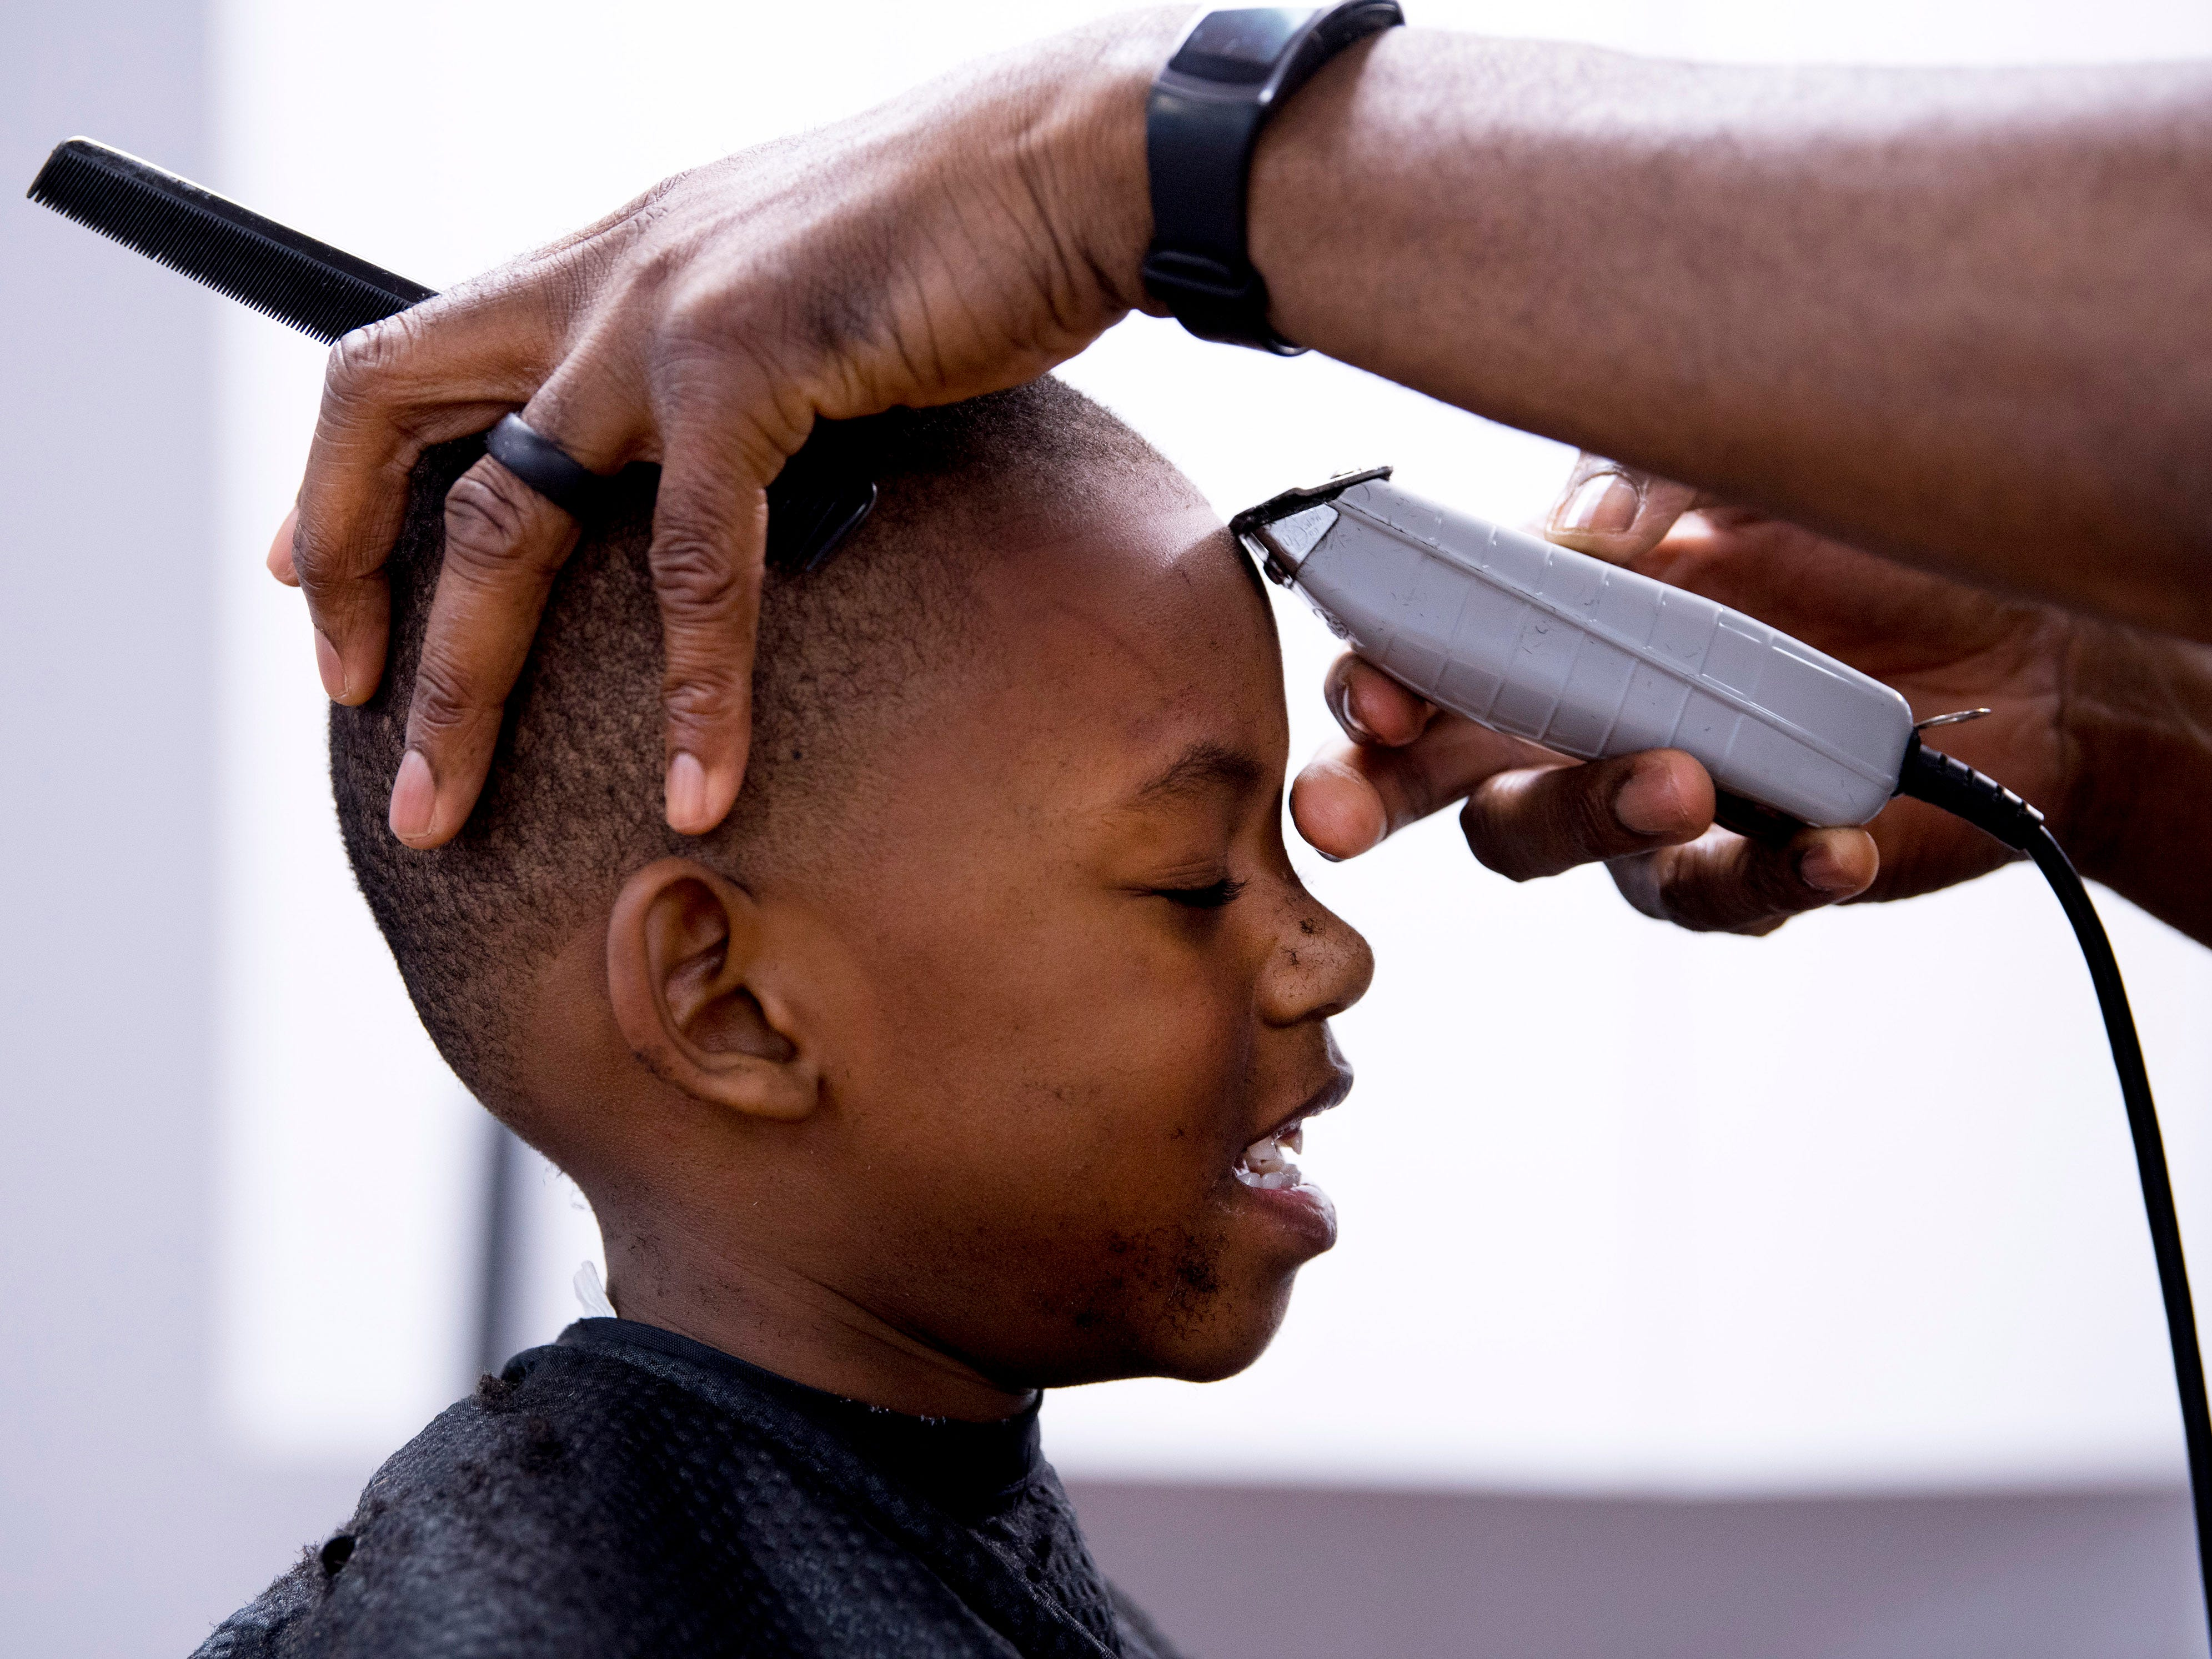 Javien Watt, 6, gets the finishing touches on his new haircut by Jerald Taylor at Jerald's Barbershop Monday morning. Tyler and barber Demetrius Fingers volunteered their day off to help out area youngsters with free hair cuts in preparation for their first day of school this Wednesday. The business partnered with Young and Established, a youth mentoring group, to help the kids out. Although the barbers were only scheduled to cut from 8 a.m. - noon, they were still working well after that with about 20 more kids waiting their turns.